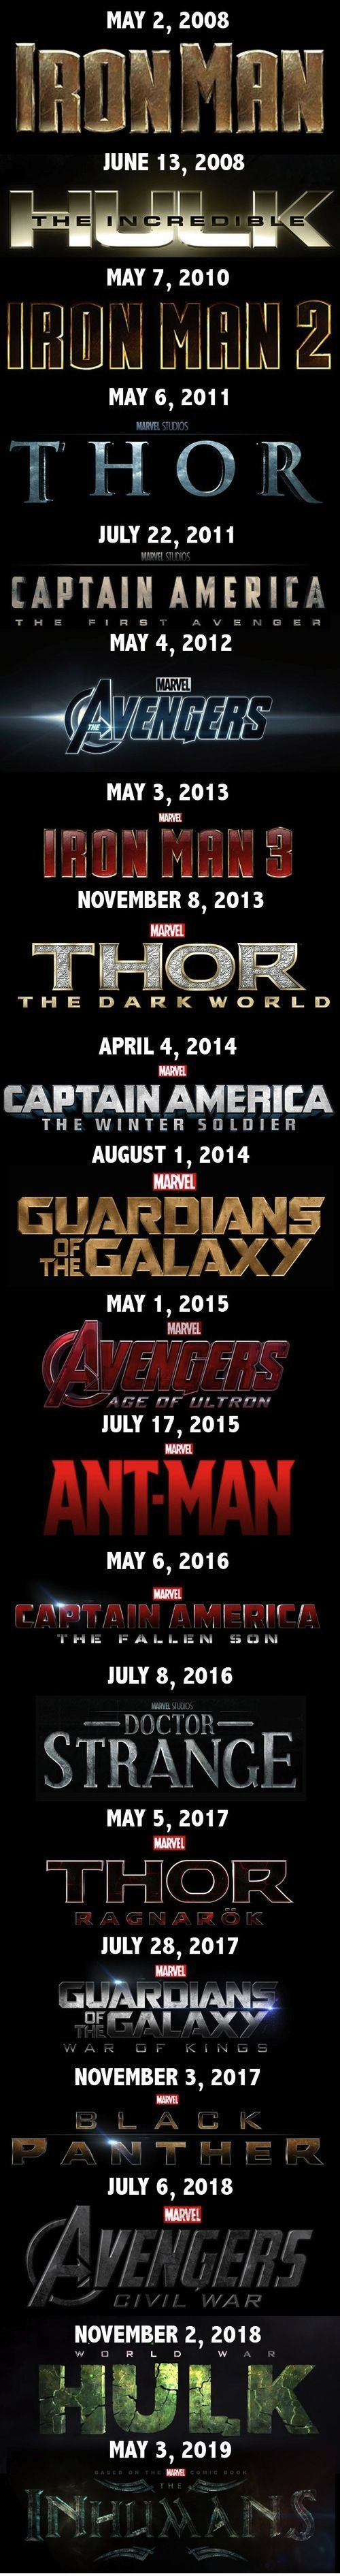 The Marvel Cinematic Universe ...